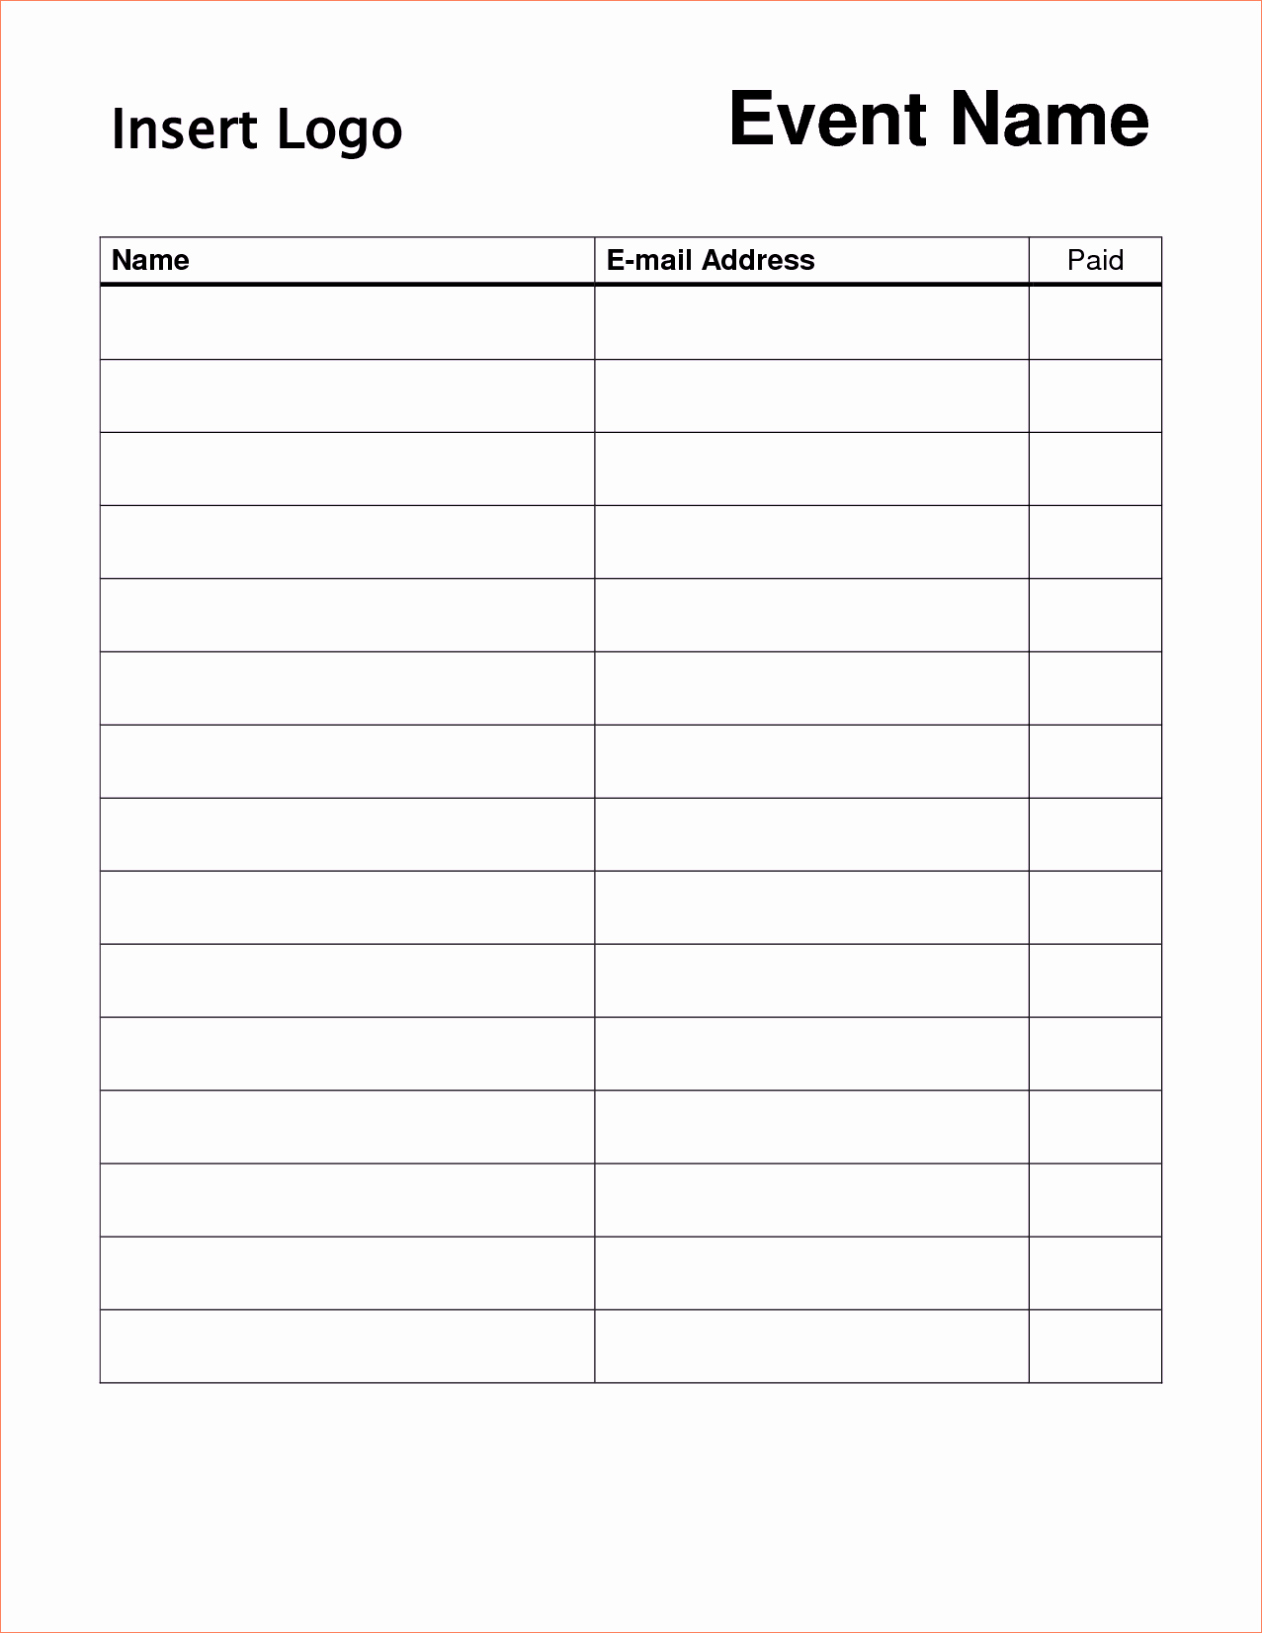 Carpool Sign Up Sheet Template Lovely Printable Sign Up Sheet Template Word Excel